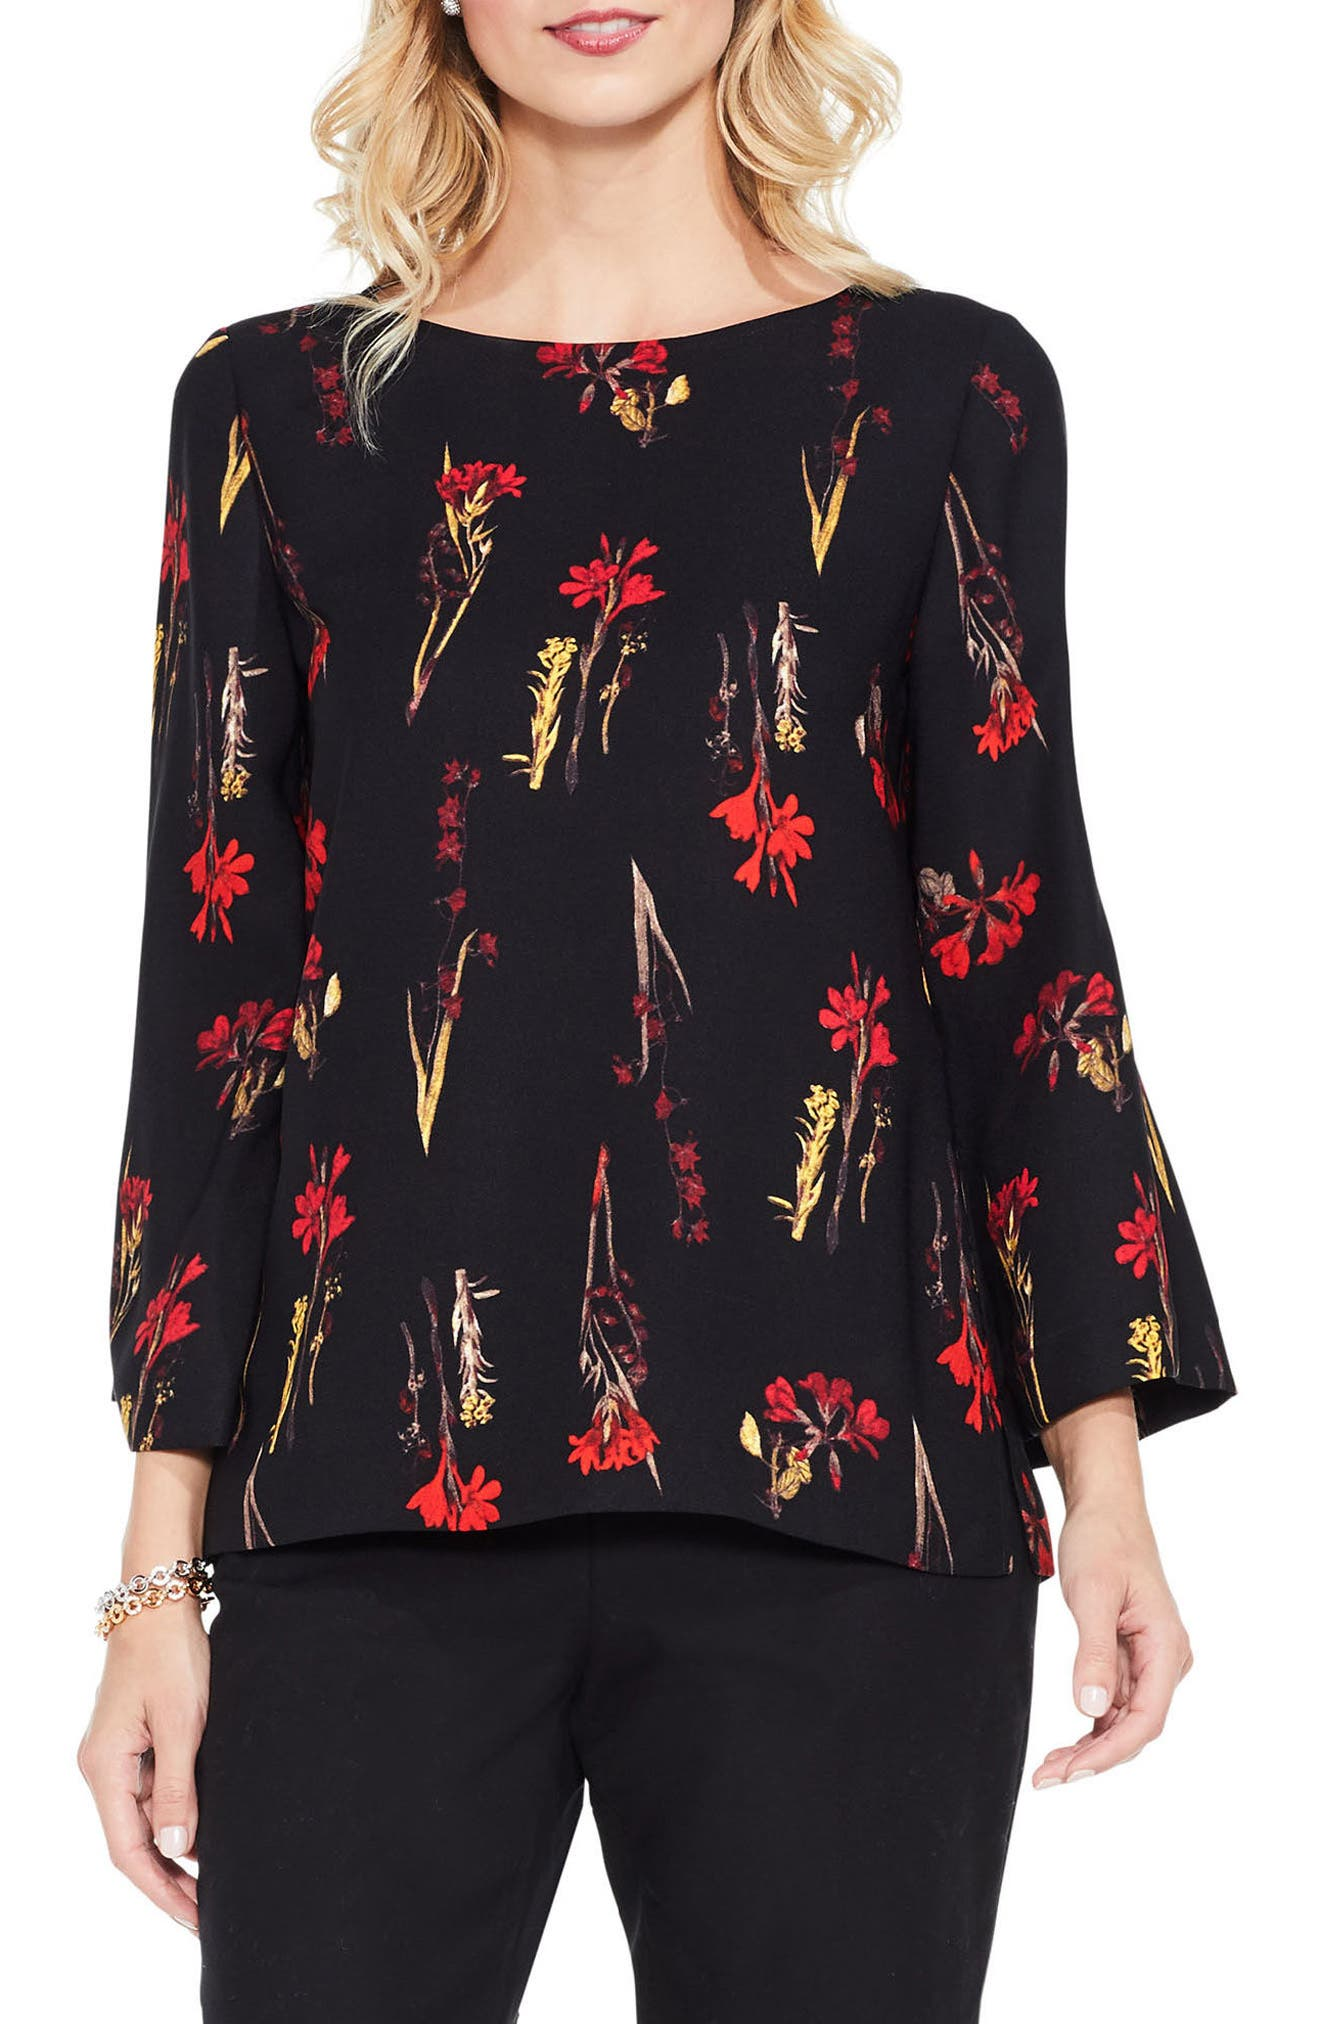 Alternate Image 1 Selected - Vince Camuto Botanical Print Blouse (Regular & Petite)